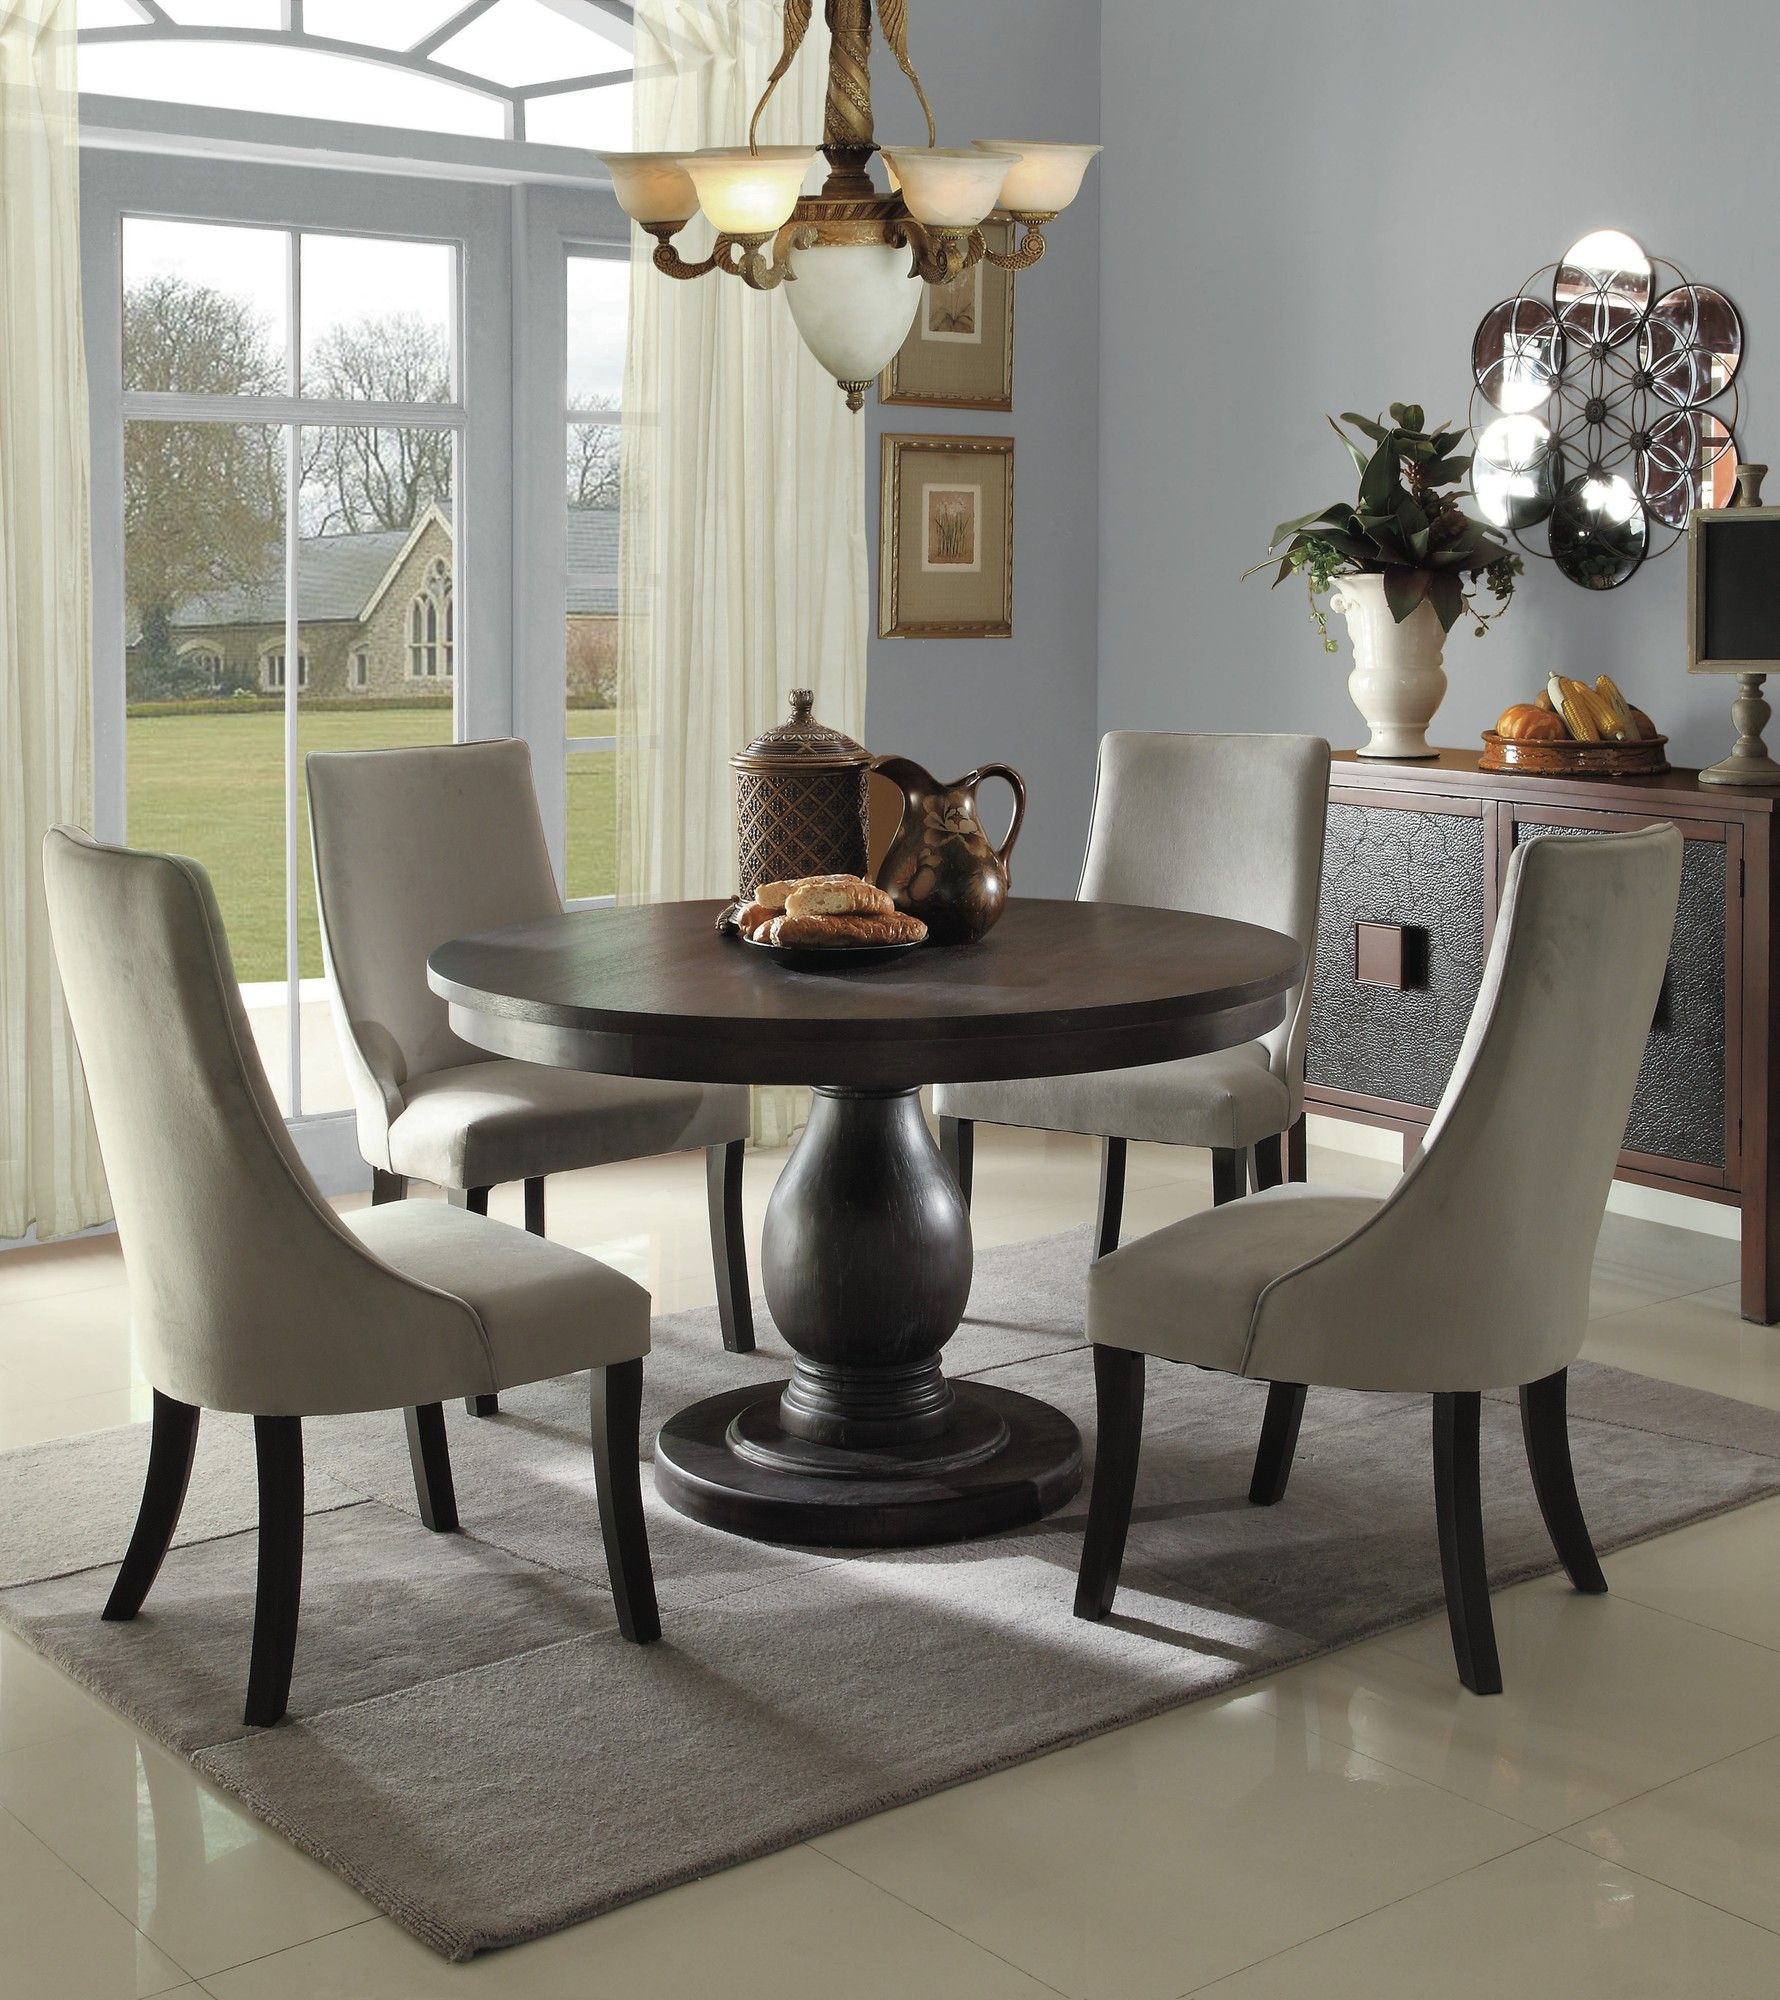 Dandelion 5 Piece Dining Set